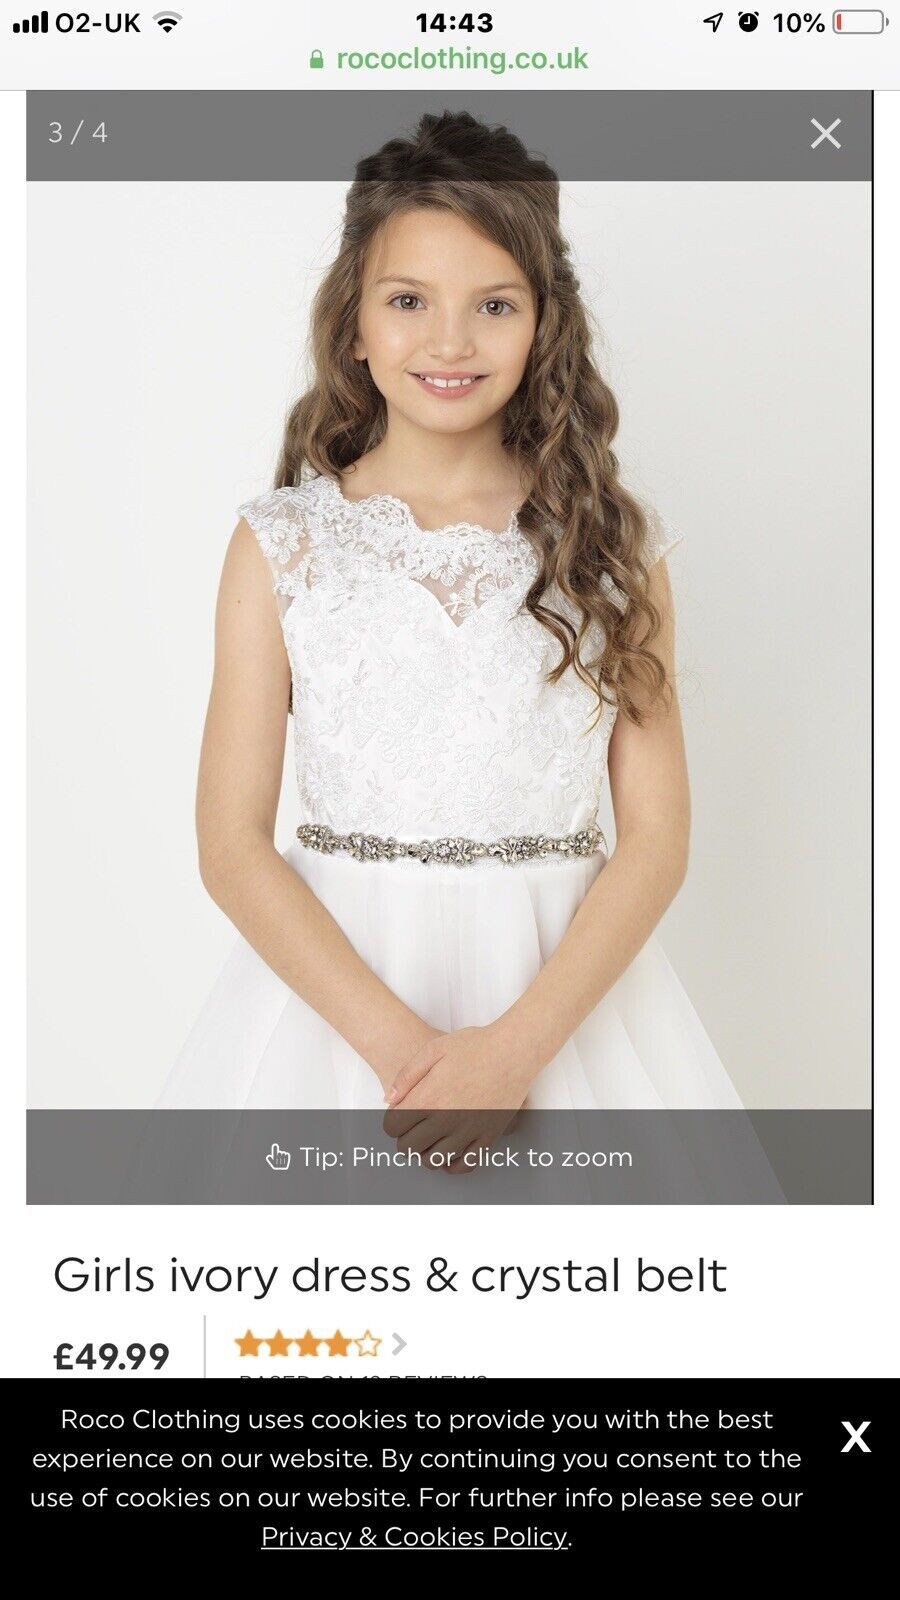 Party; Flower or Bridesmaid Dress